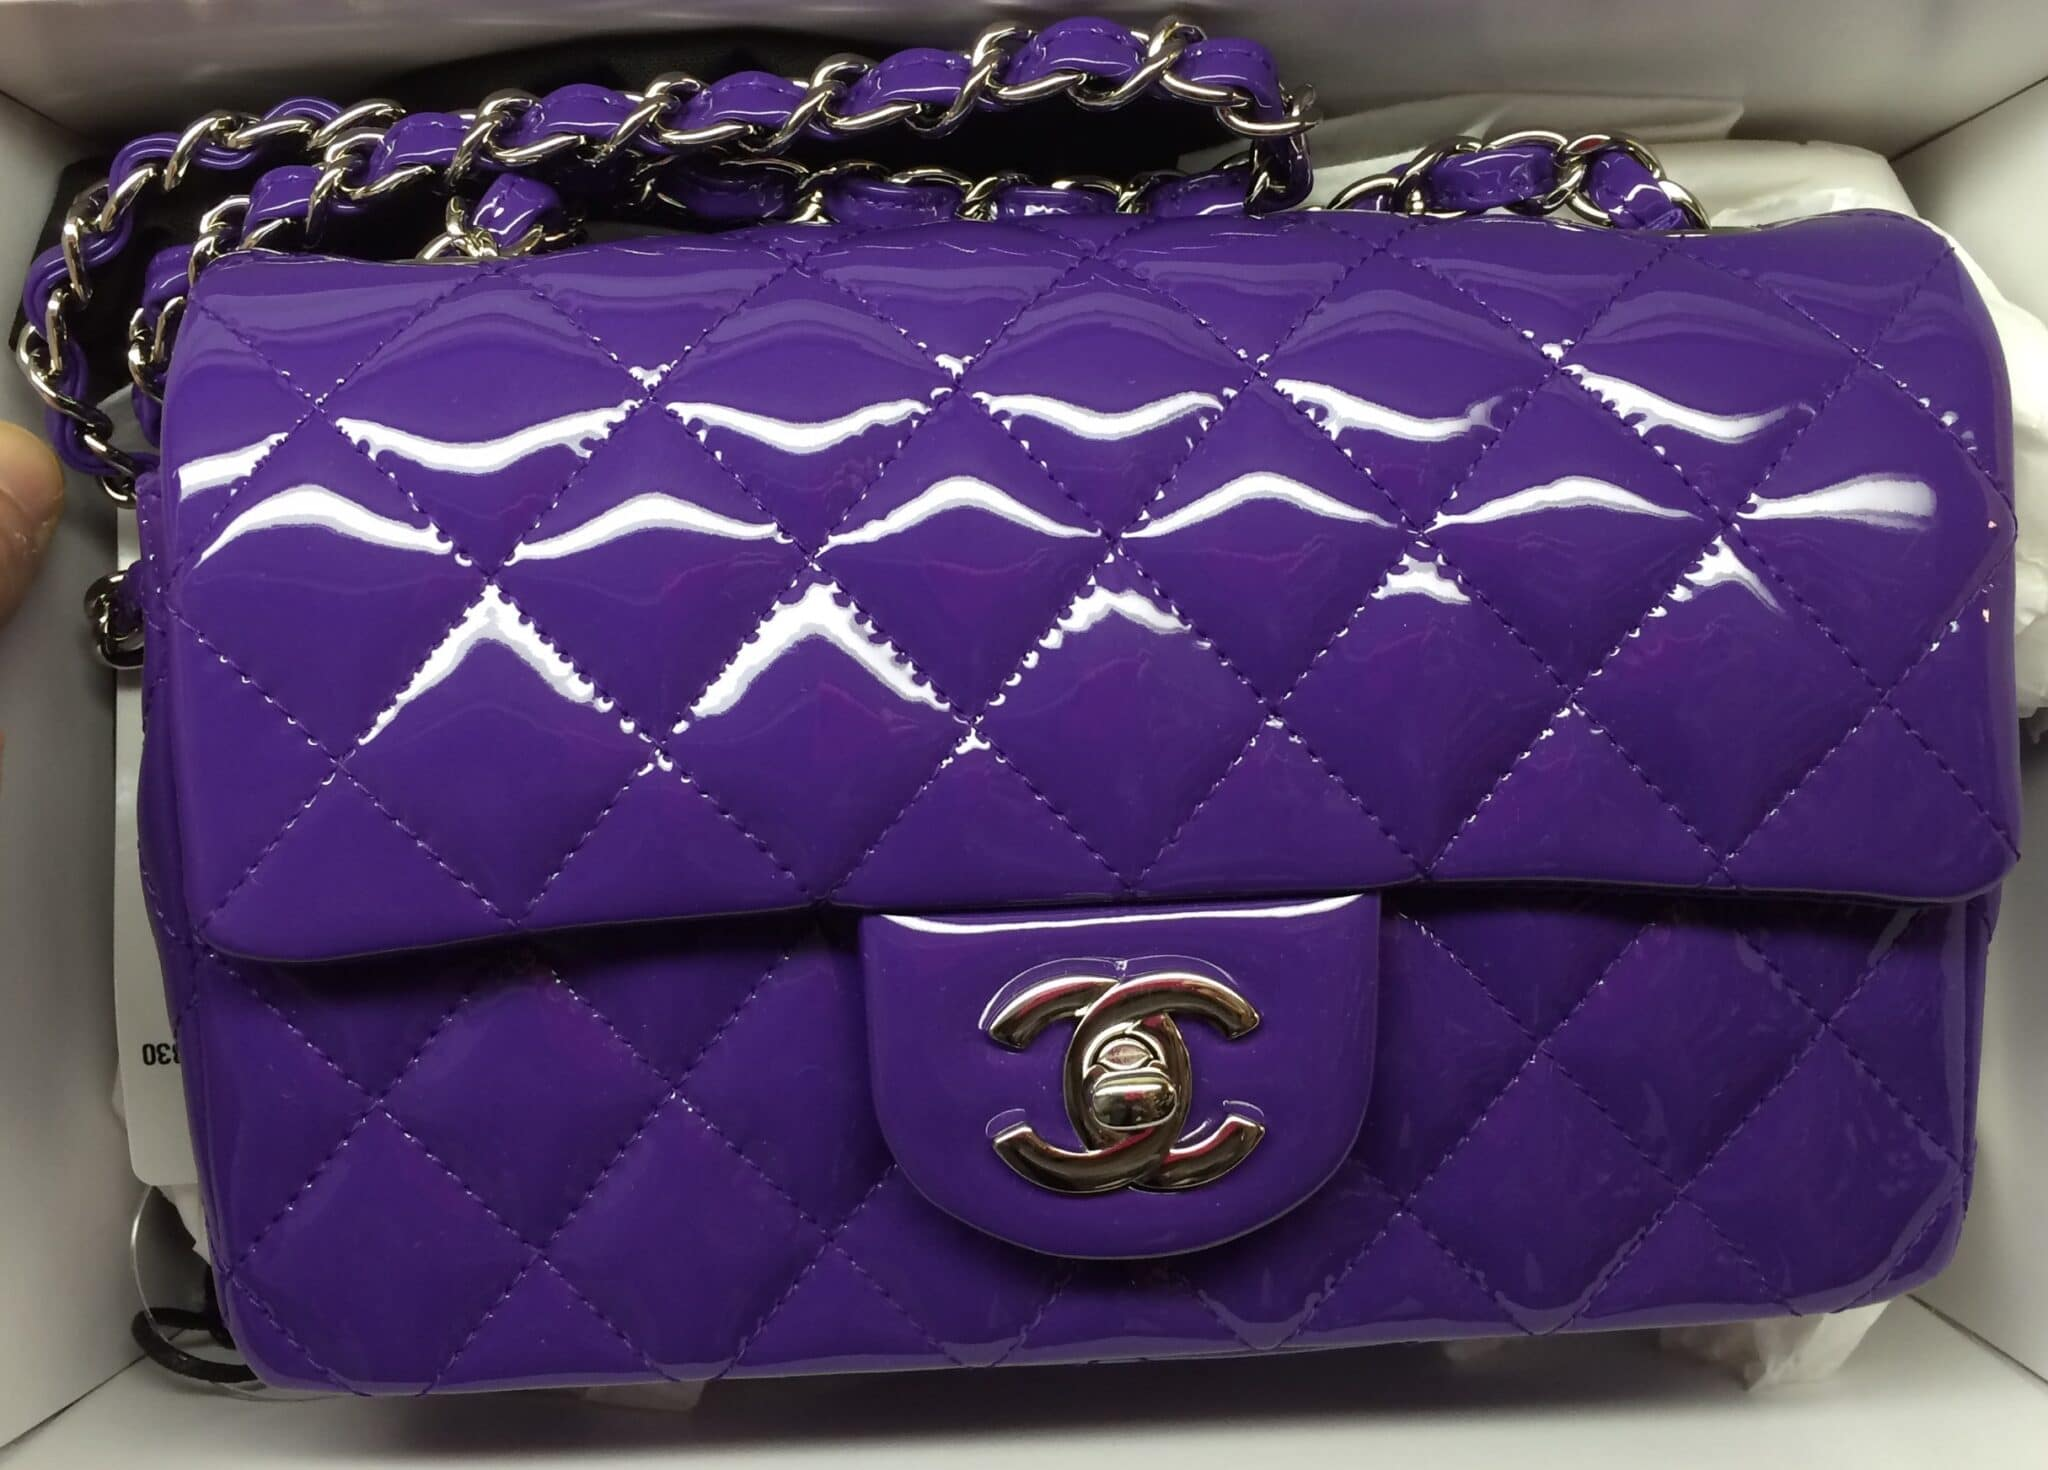 Chanel Cruise 2016 Classic Flap Bag Colors | Spotted Fashion